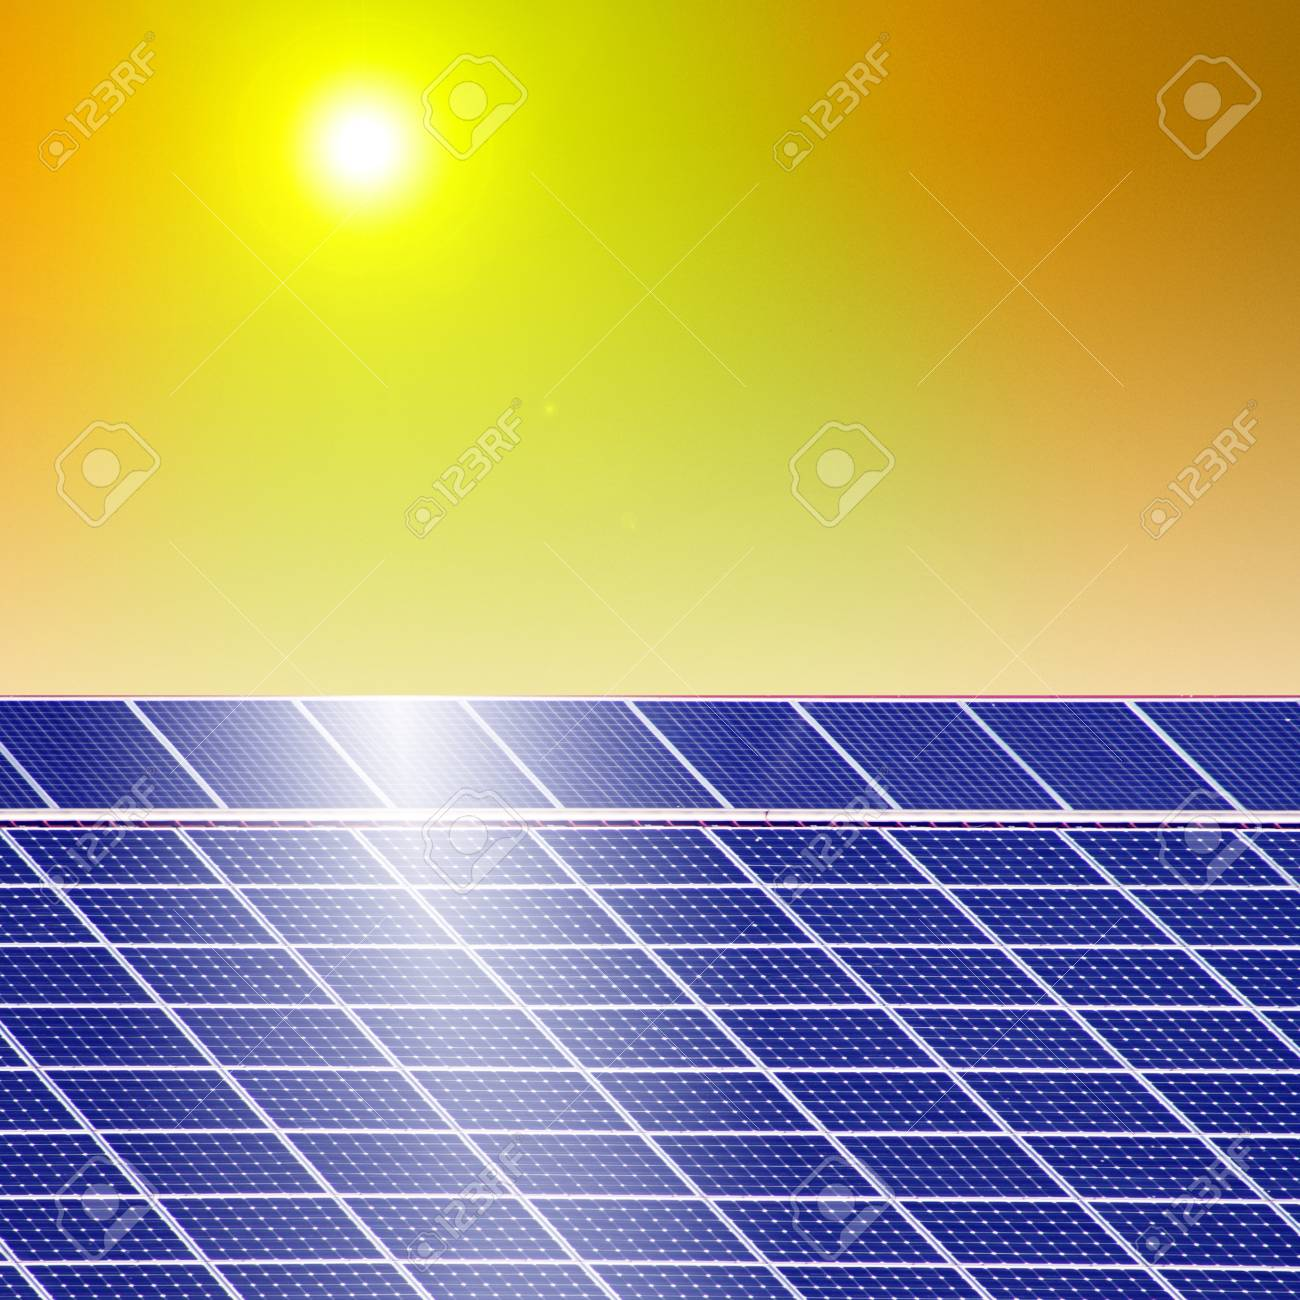 solar panels to generate electricity Stock Photo - 12587001